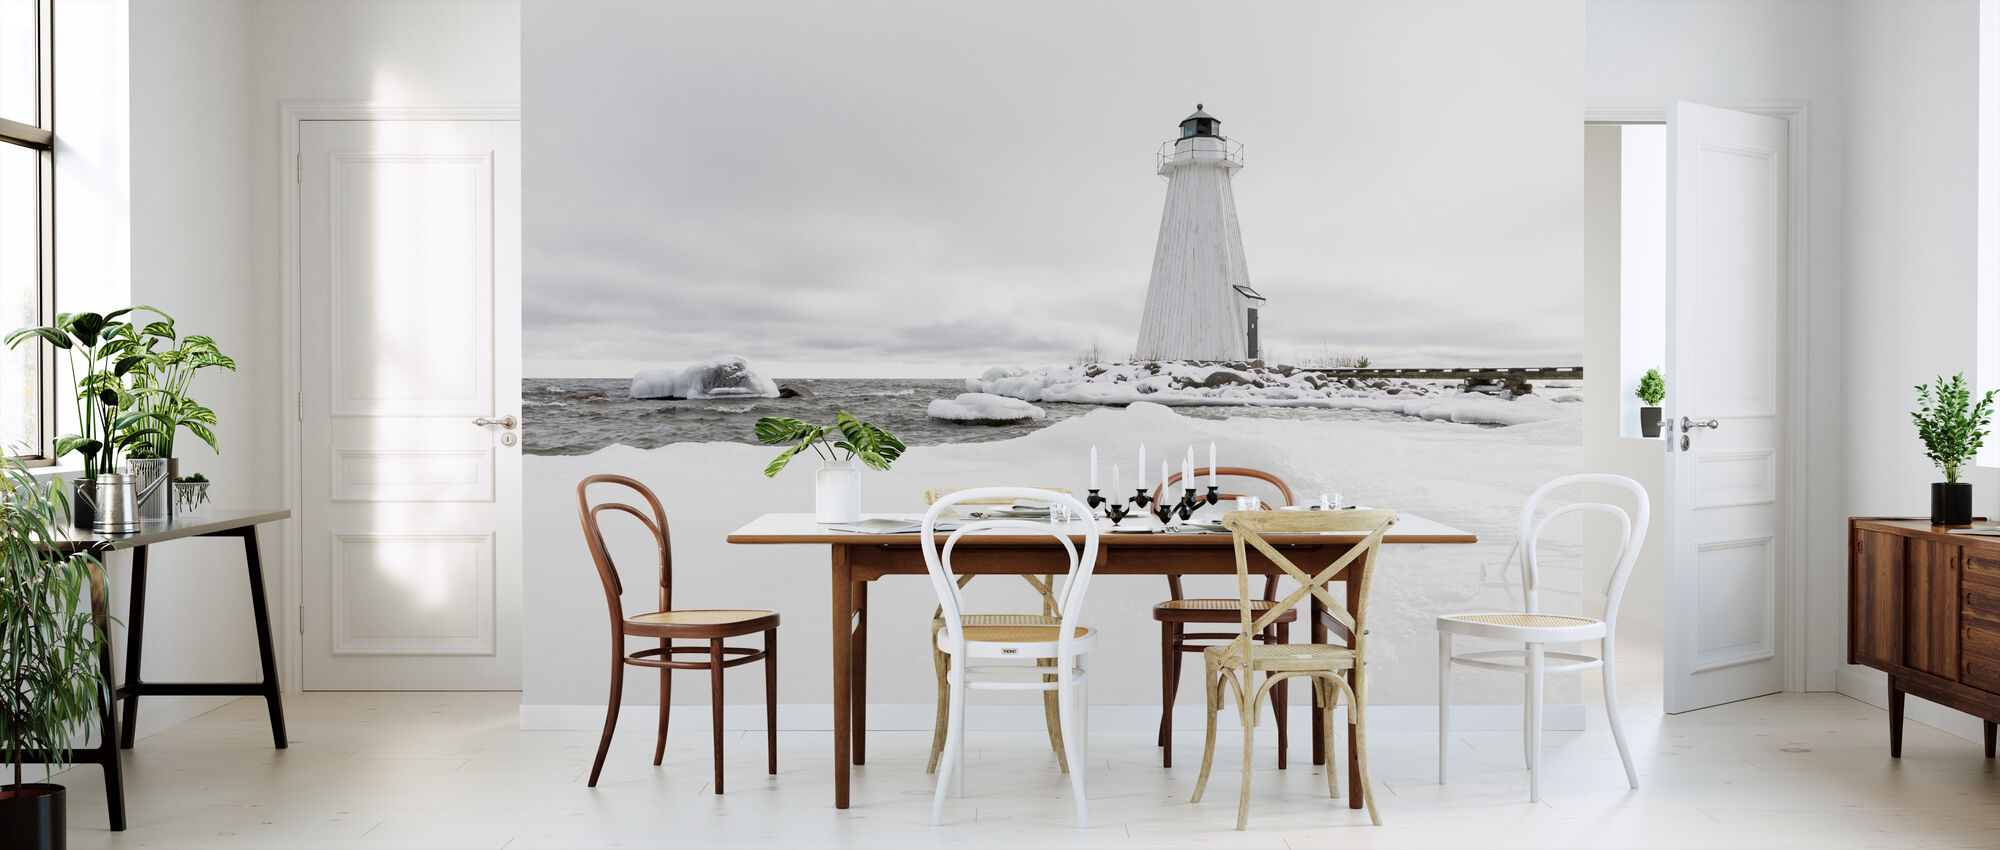 Lighthouse in Winter - Wallpaper - Kitchen